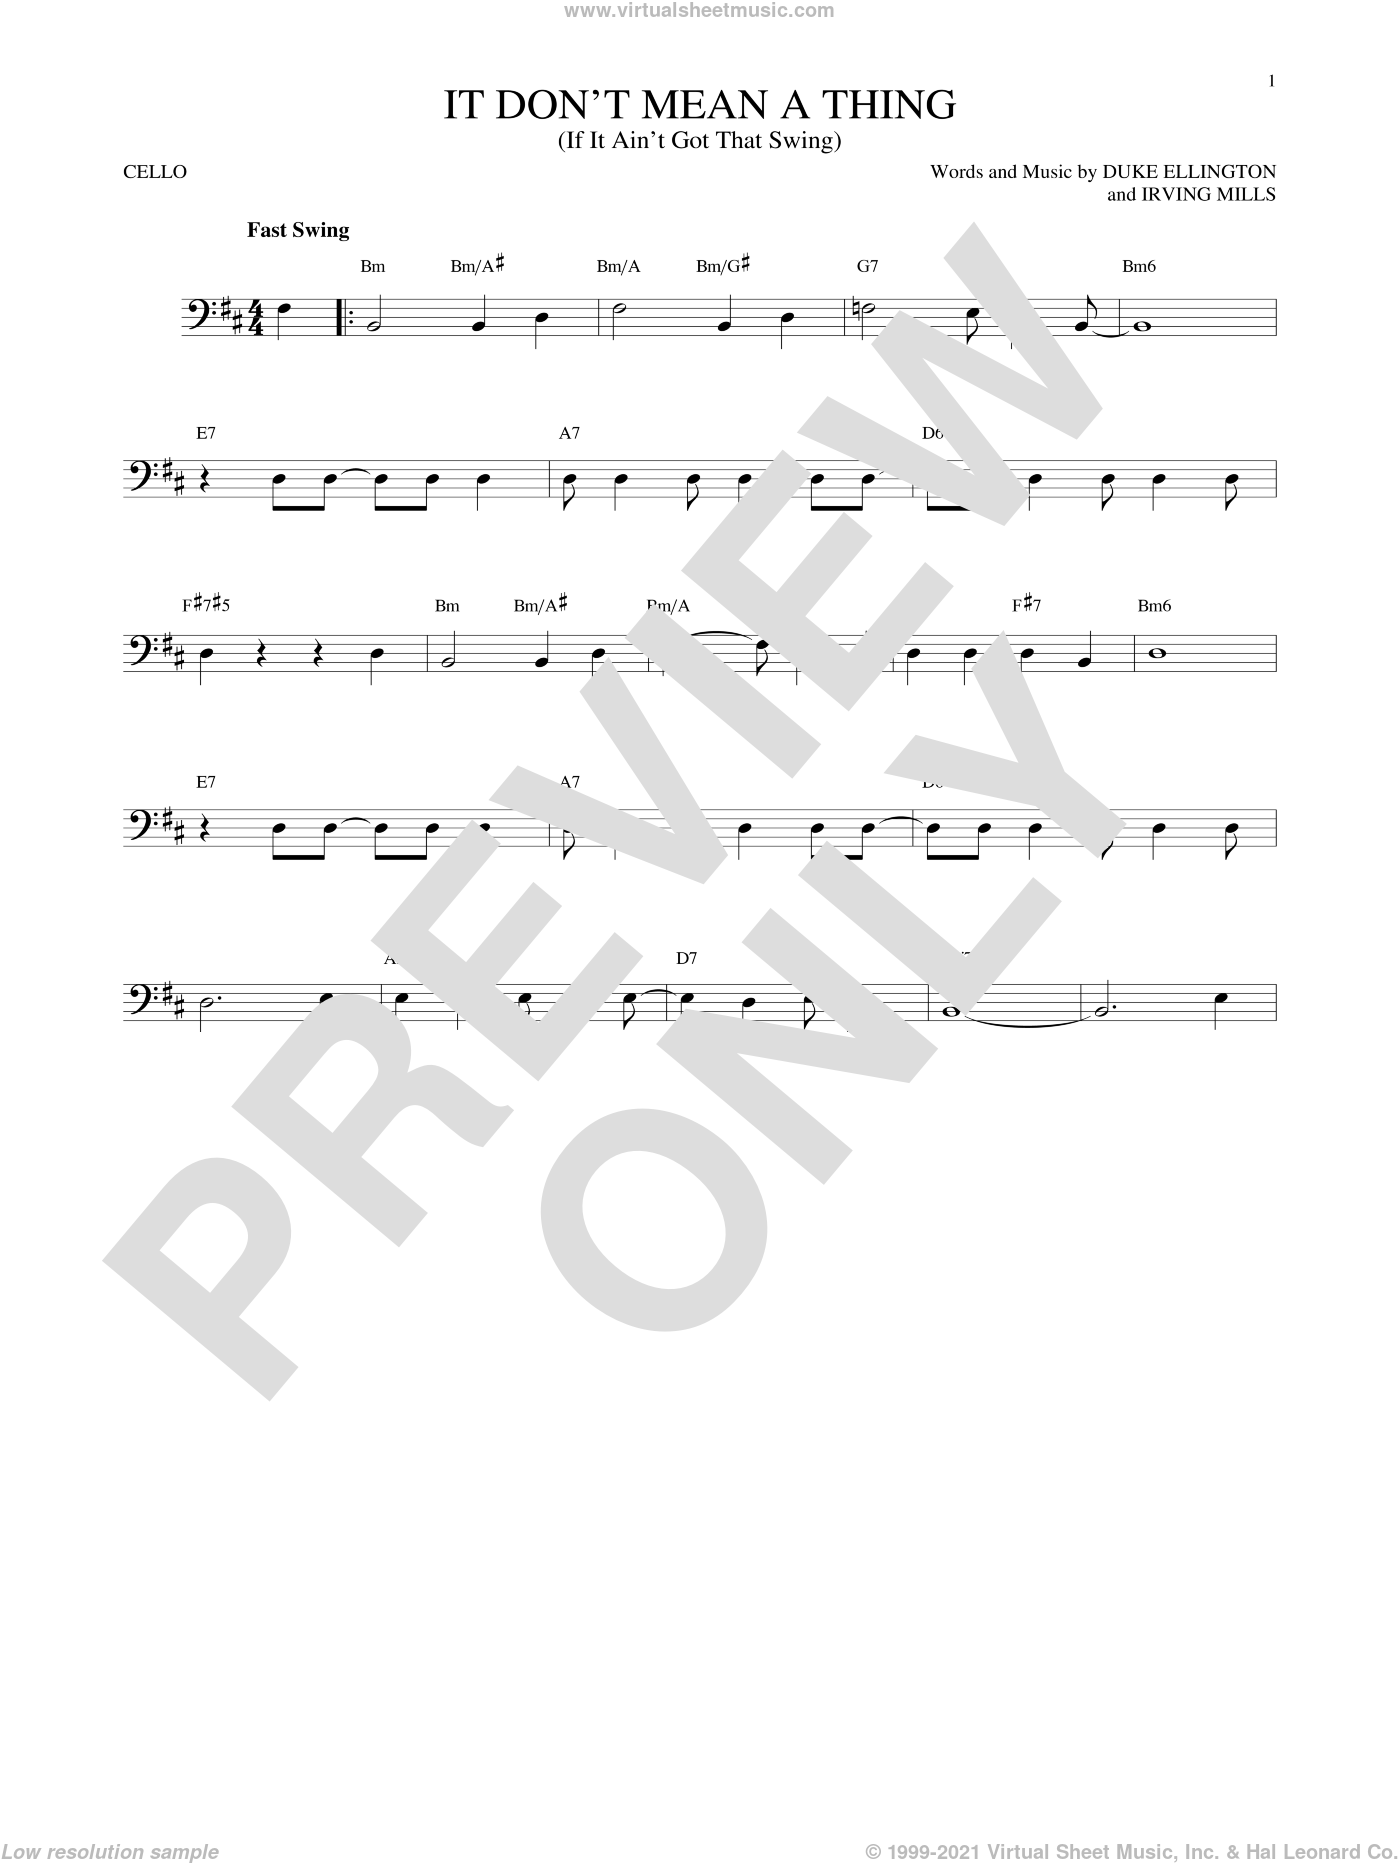 It Don't Mean A Thing (If It Ain't Got That Swing) sheet music for cello solo by Duke Ellington and Irving Mills, intermediate skill level